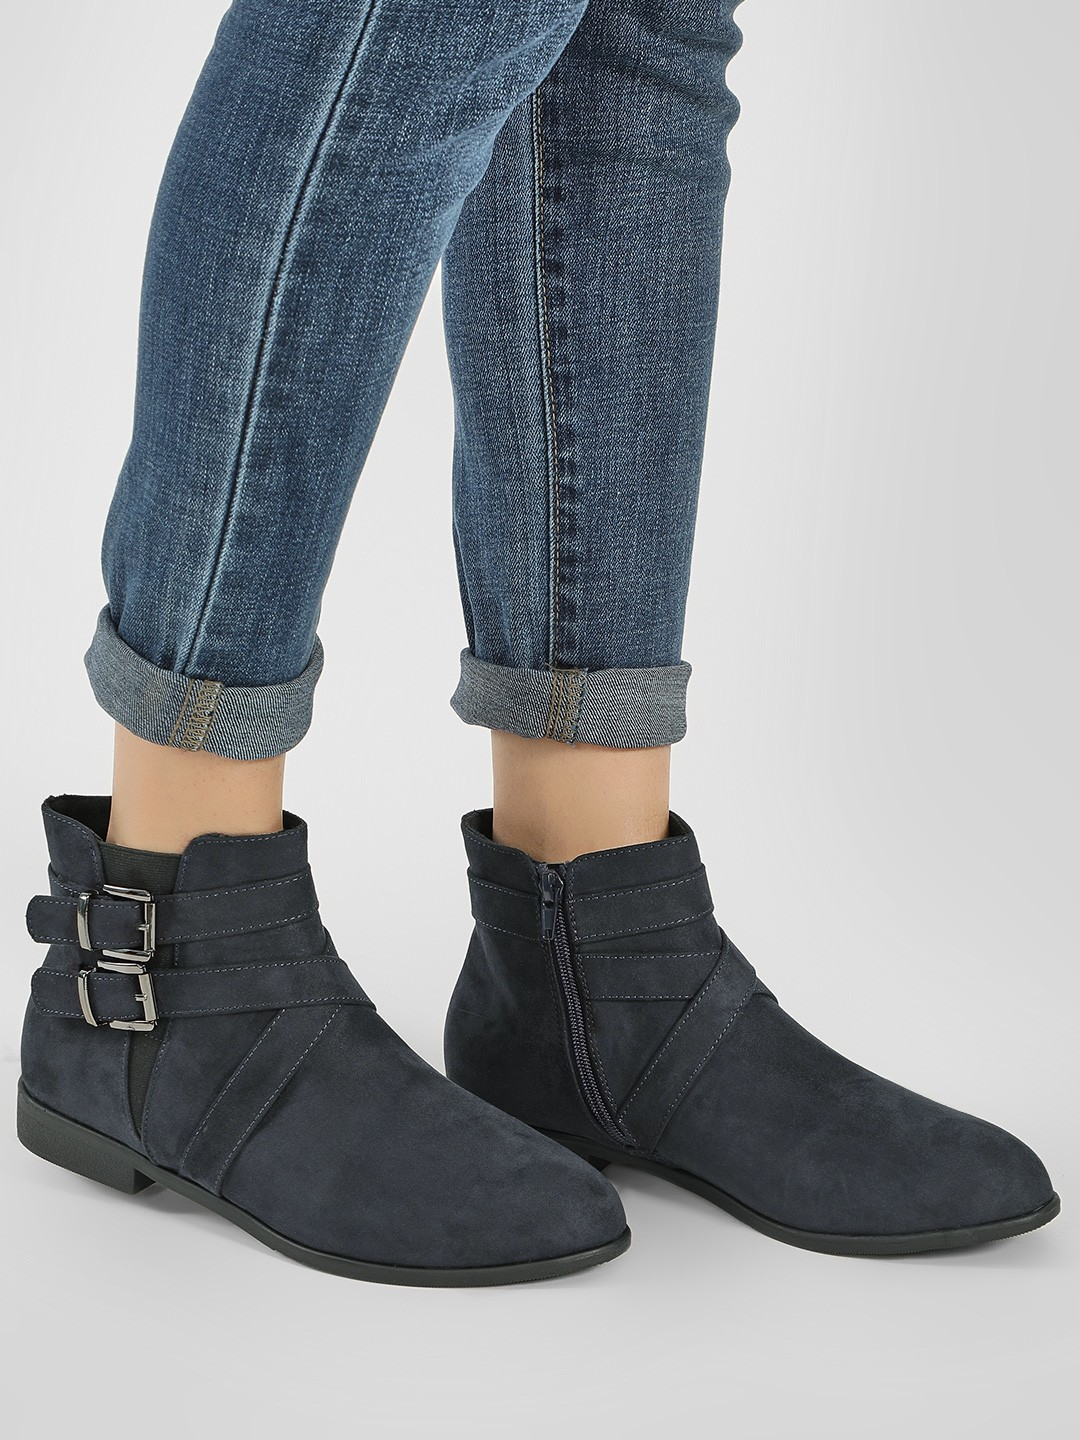 New Look Navy Cross Strap Ankle Boots 1